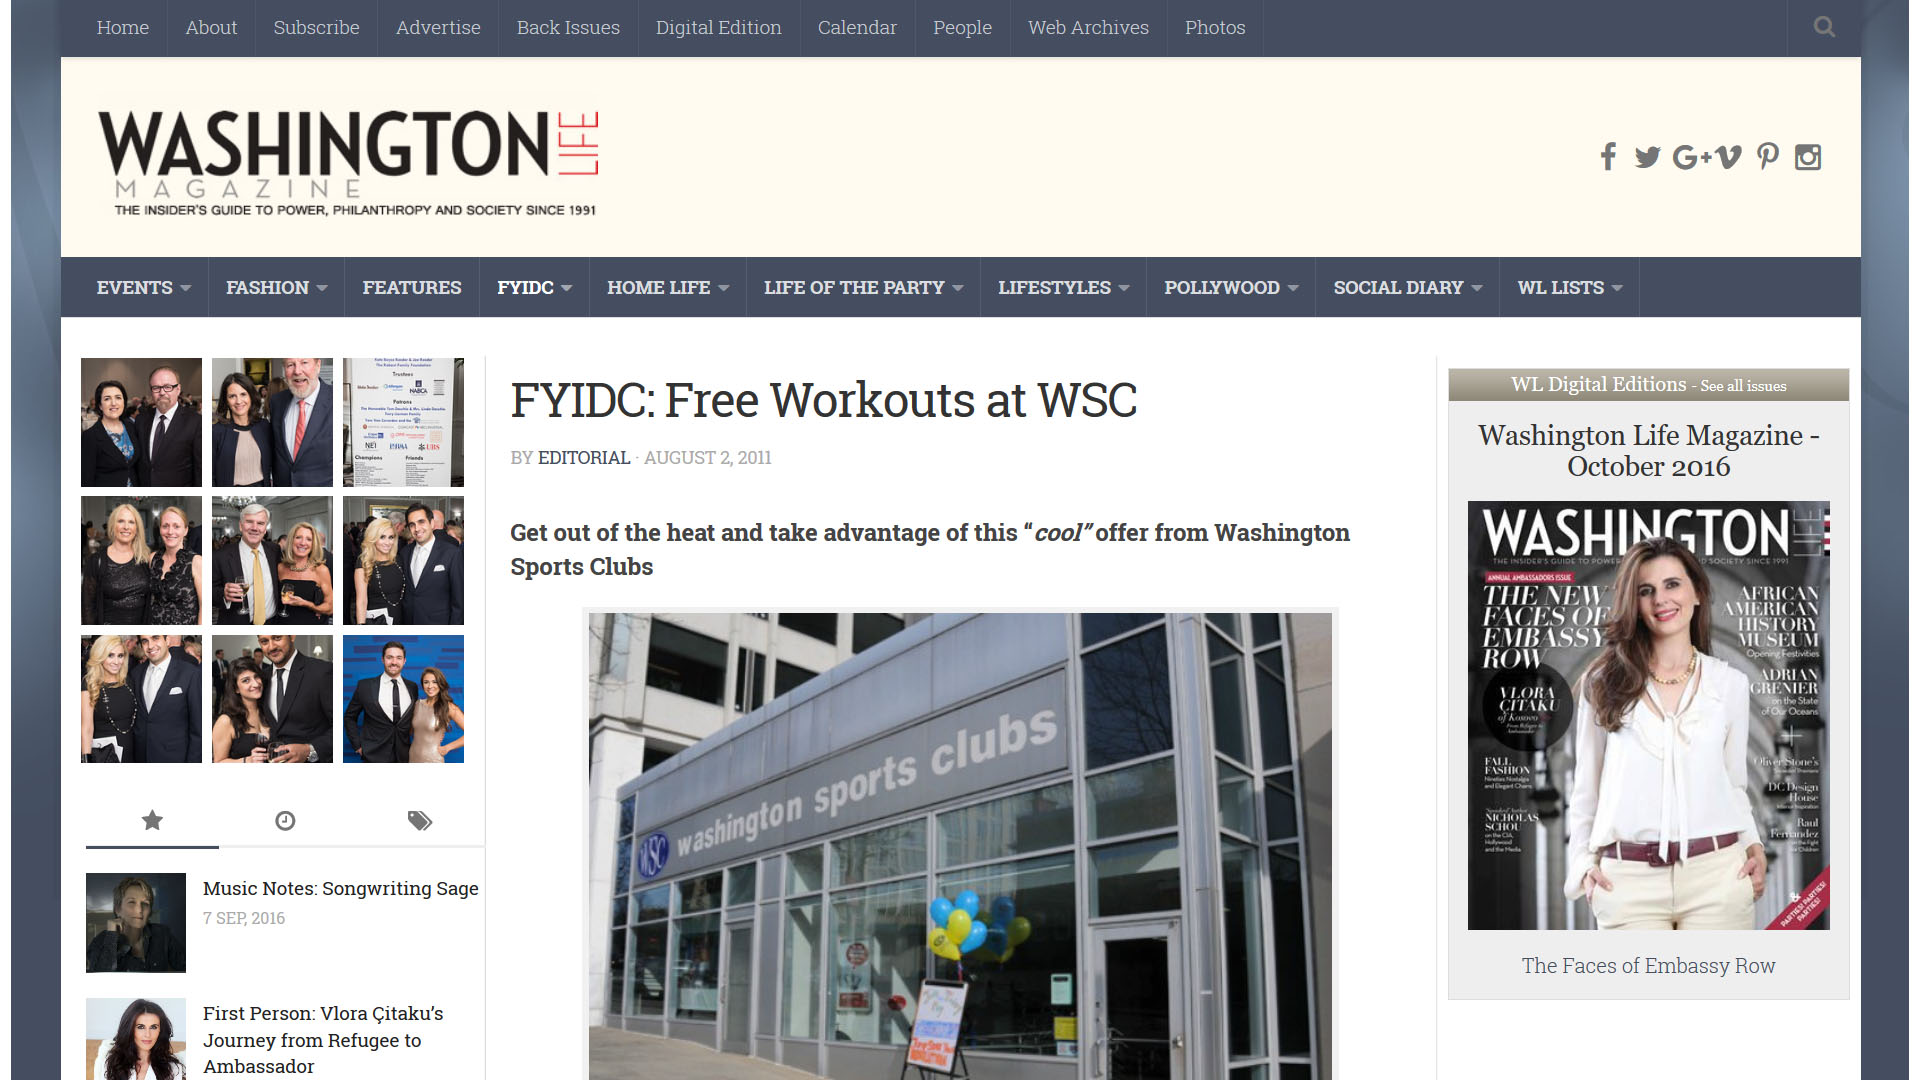 FYIDC: Free Workouts at WSC